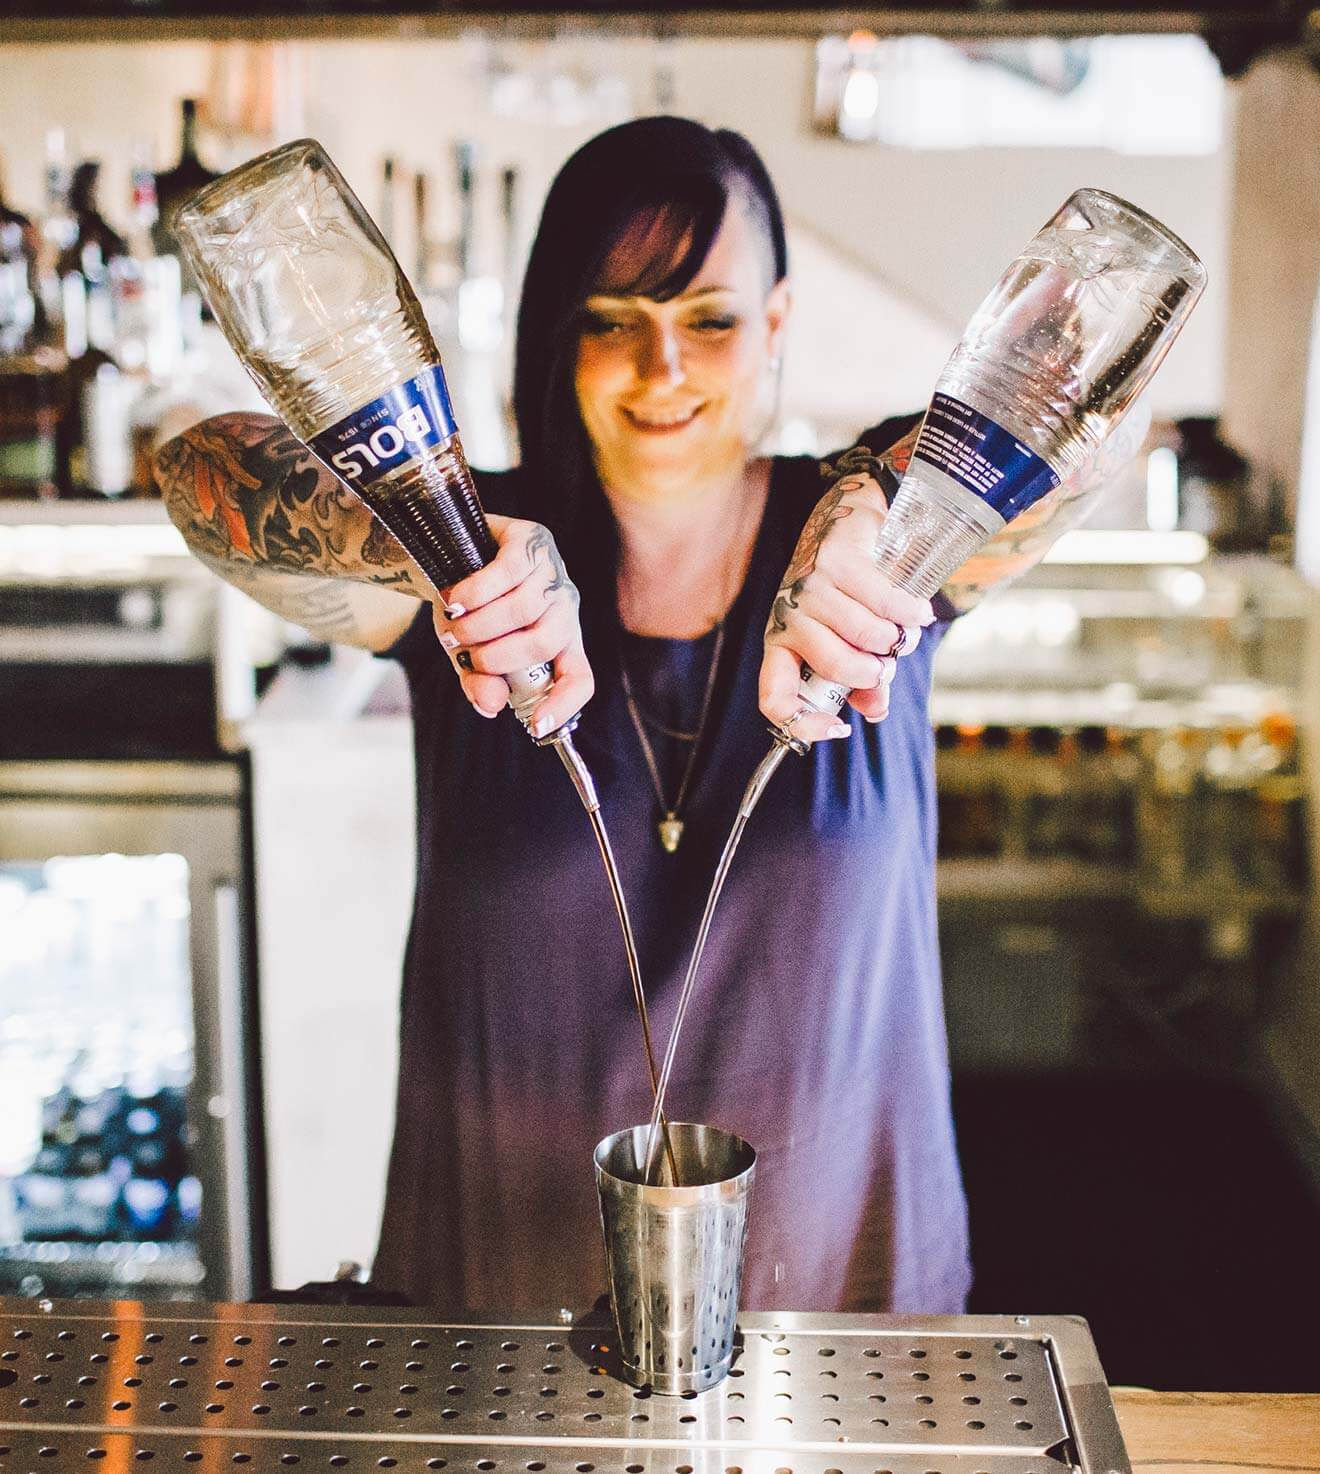 Mixologist Kate Gerwin pouring cocktails, what's chilling right now